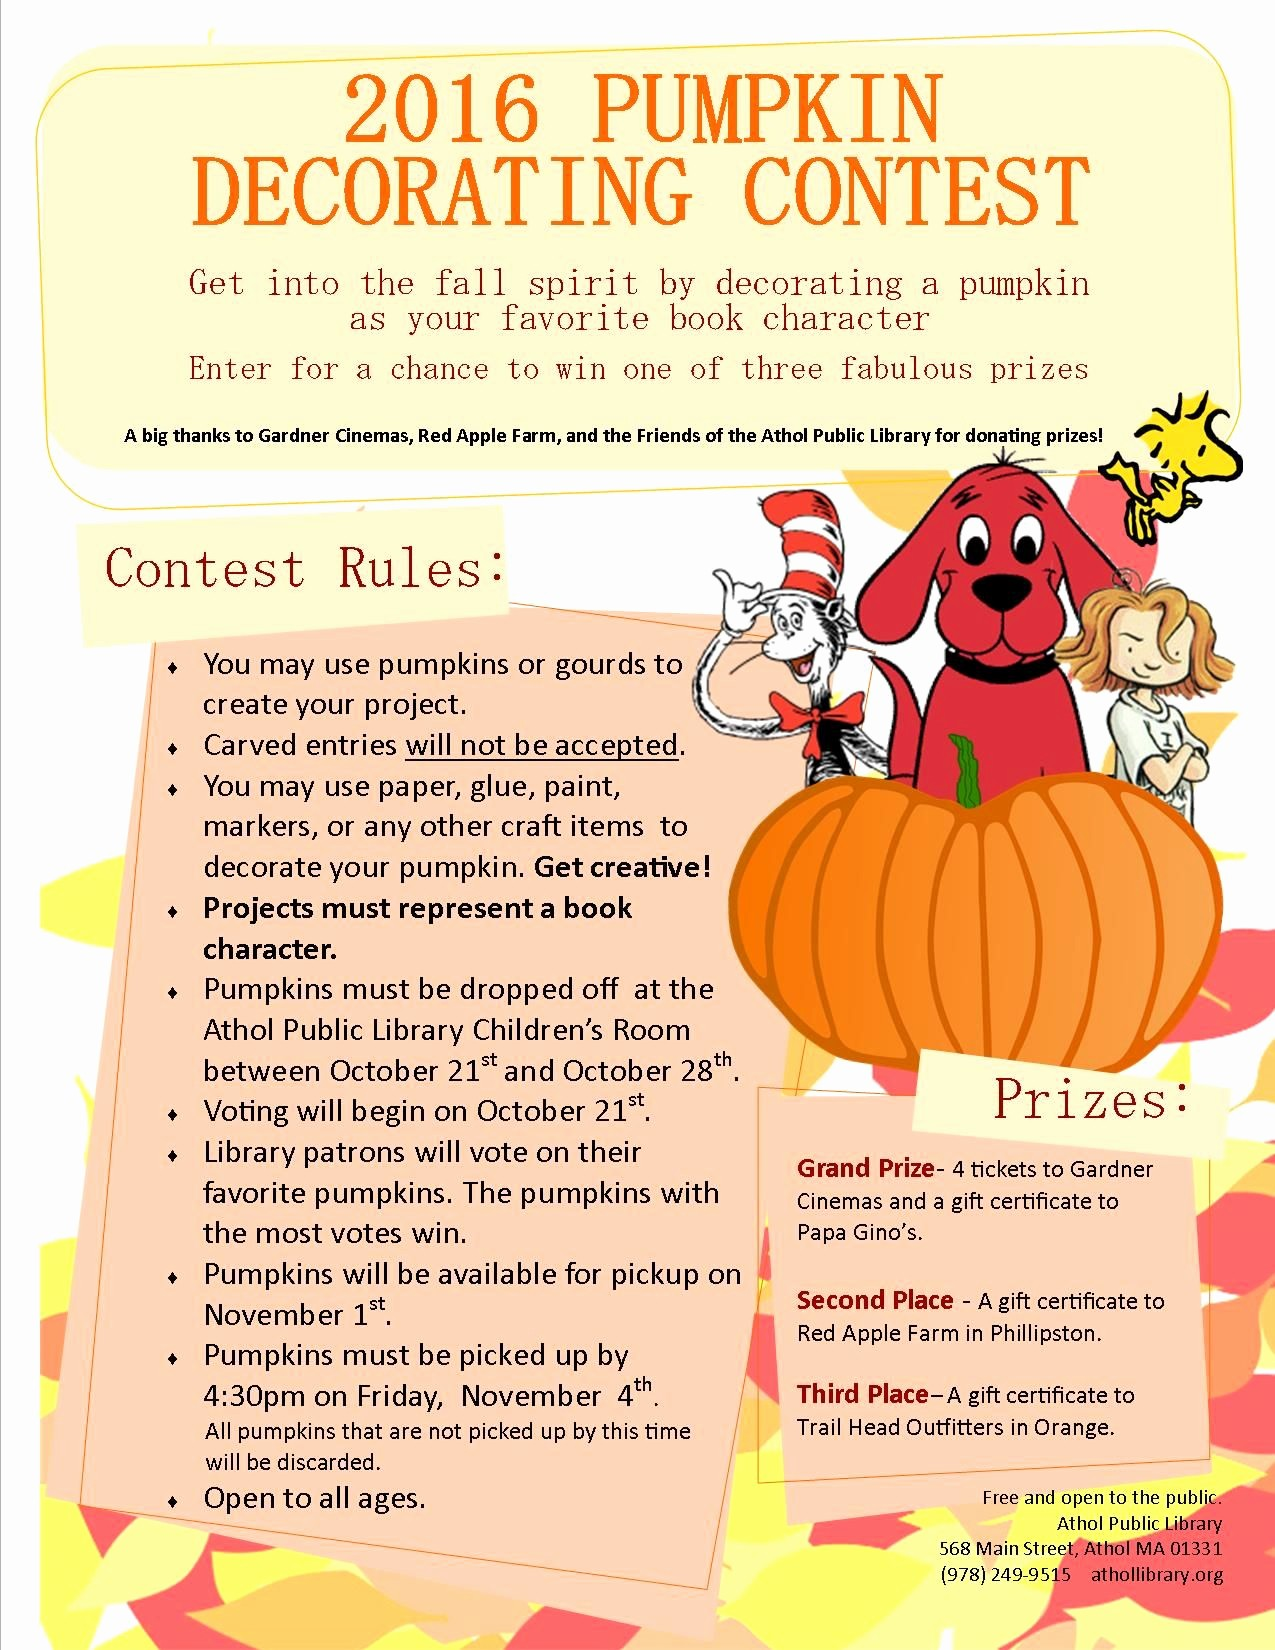 Pumpkin Carving Contest Flyer Template New Image Result for Pumpkin Decorating Contest Flyer